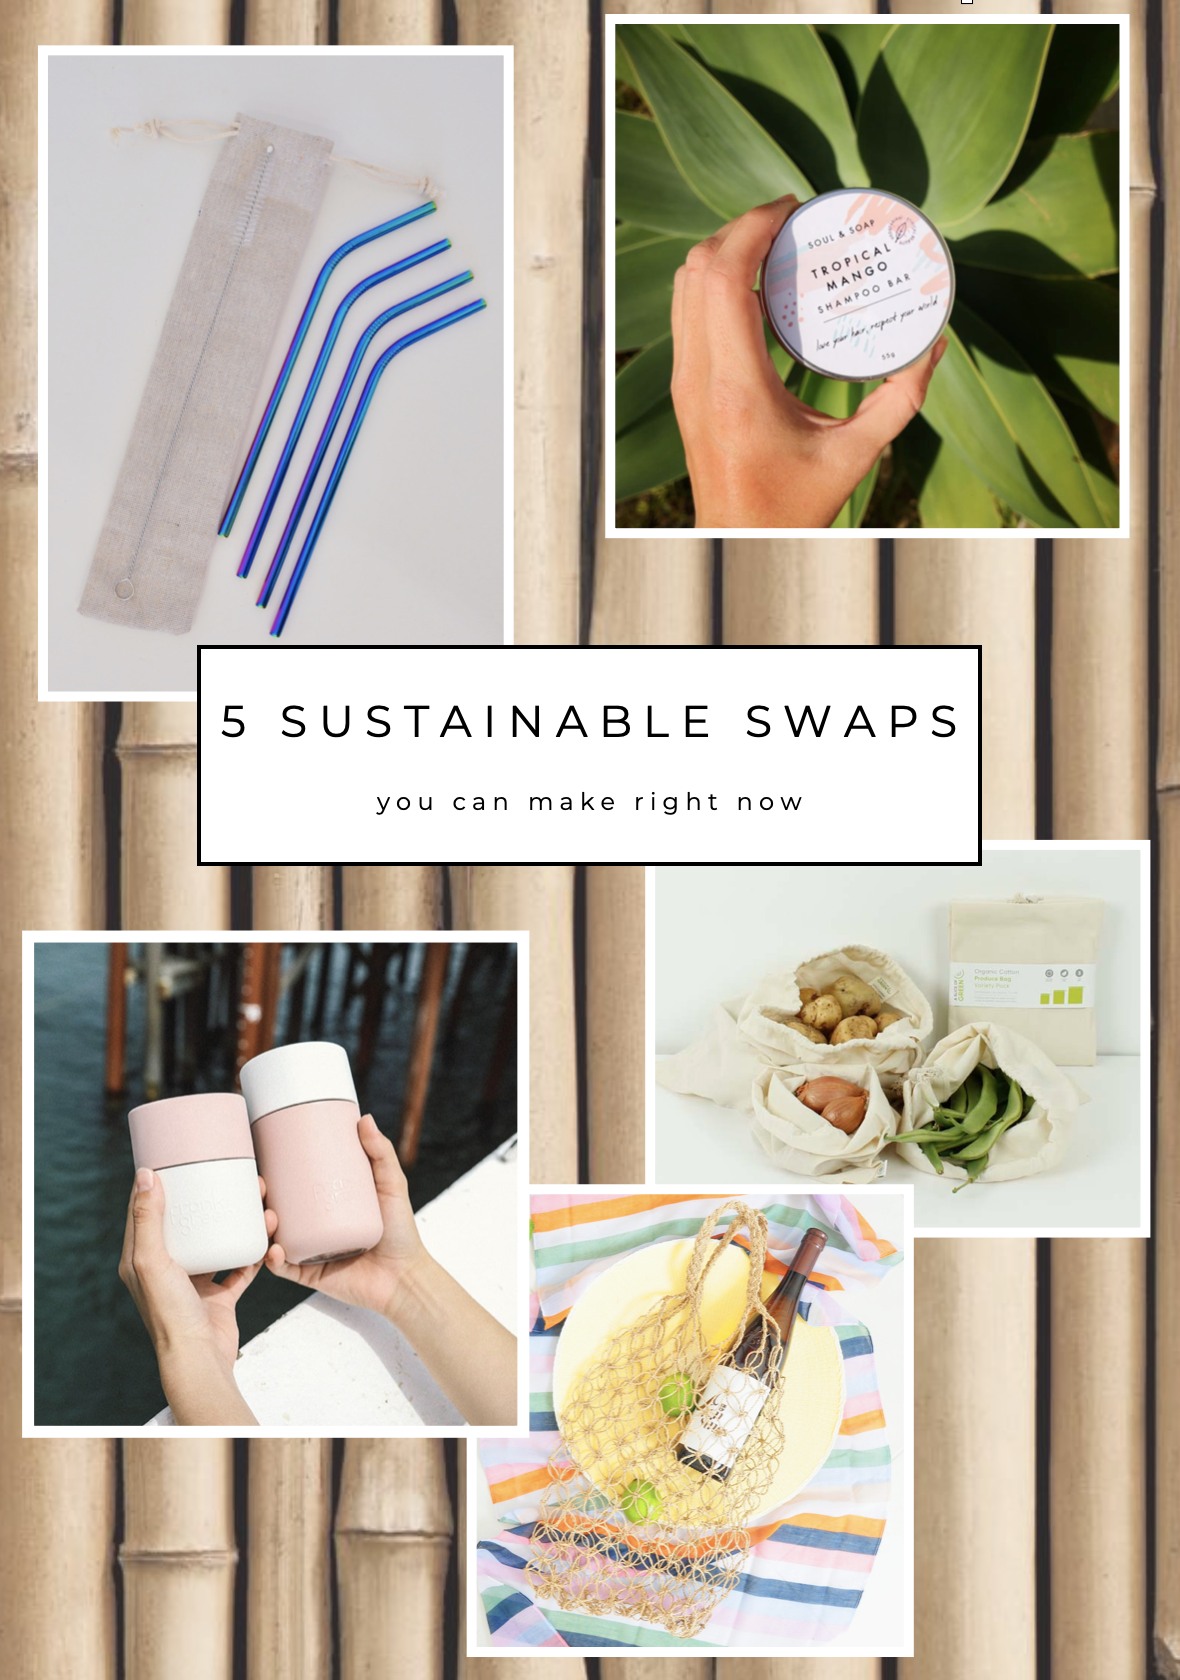 5 Sustainable swaps you can make right now | Soi 55